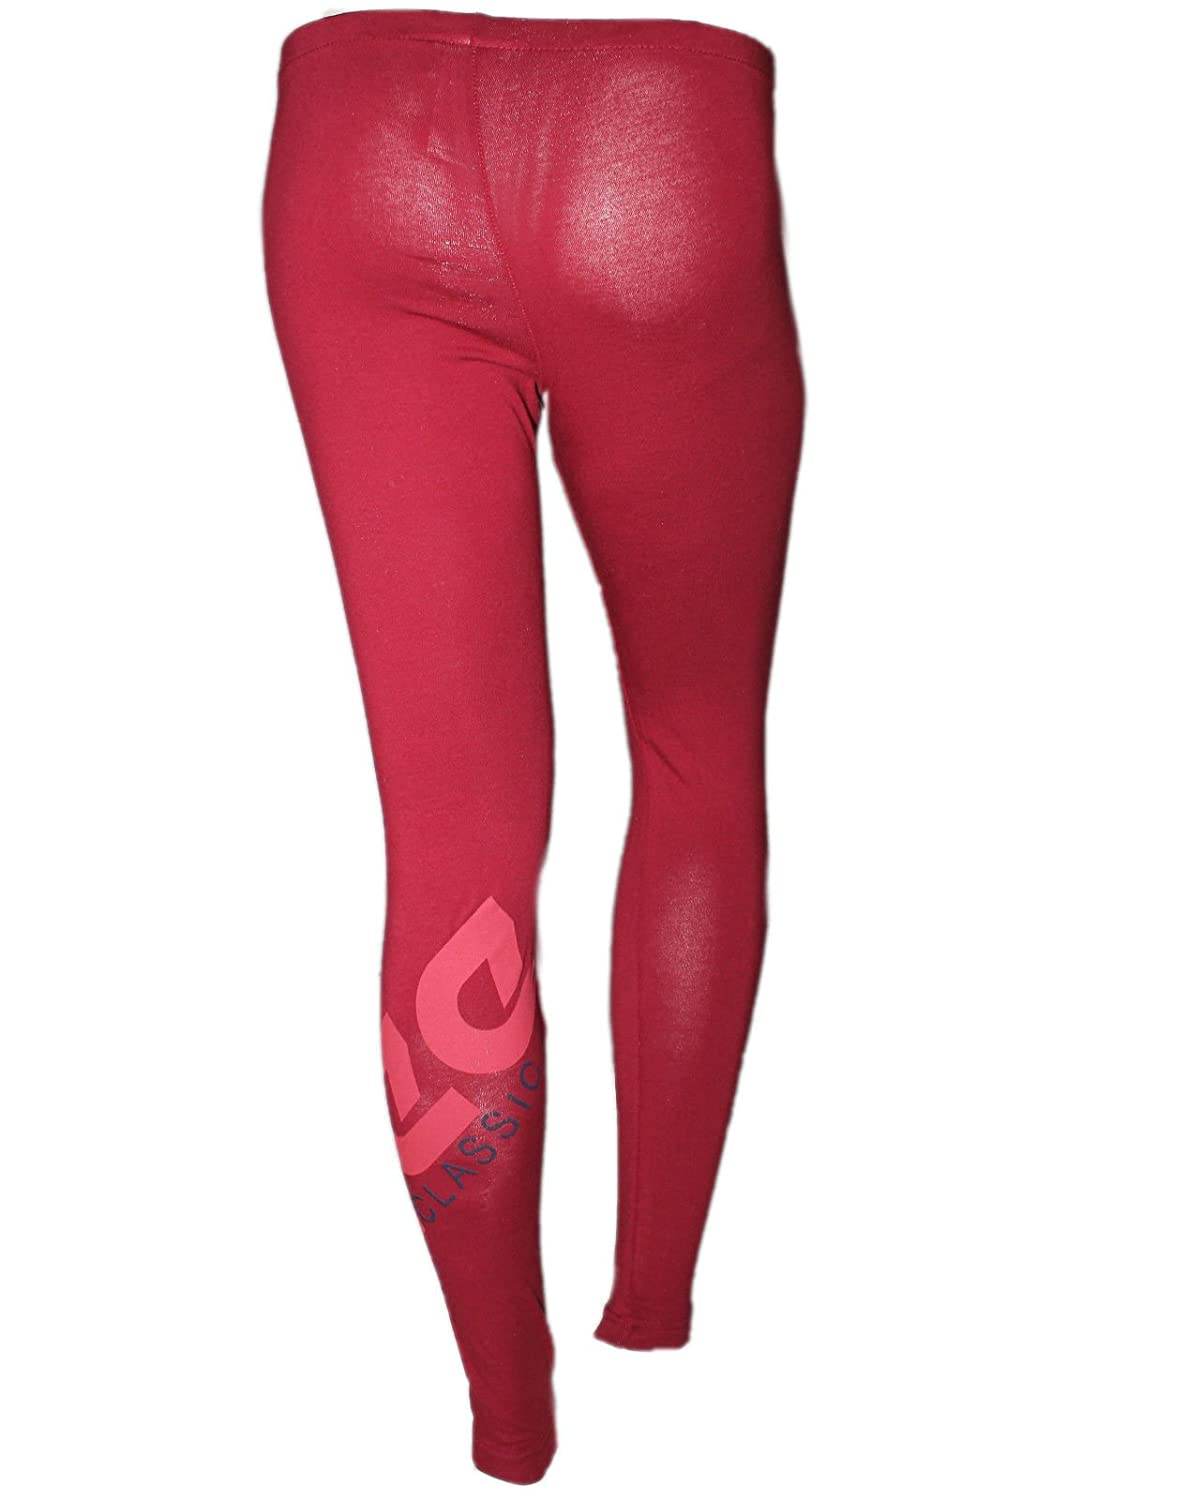 Reebok Damen Leggings Pant AB8198 F REE LEGGINGS: